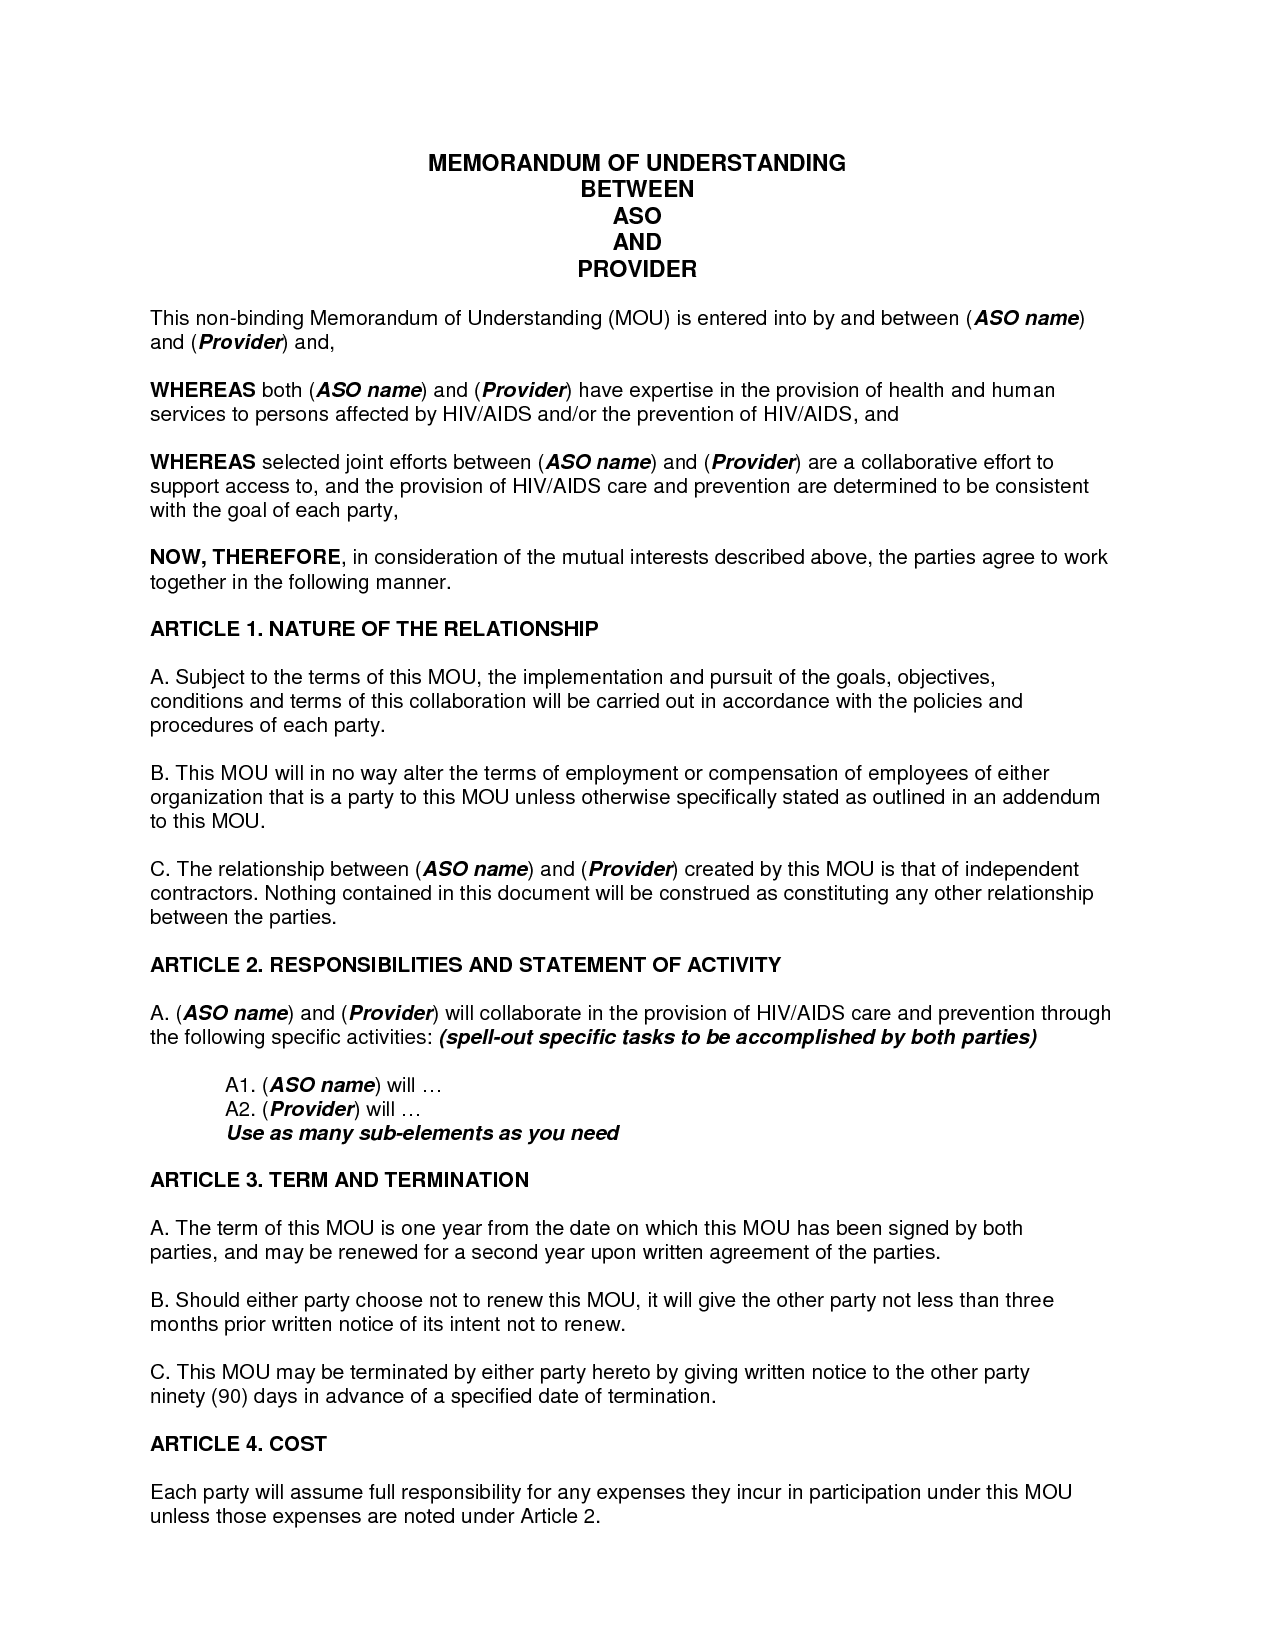 Sample memorandum of understanding business partnership doc by sample memorandum of understanding business partnership doc by m o u sample cheaphphosting Image collections